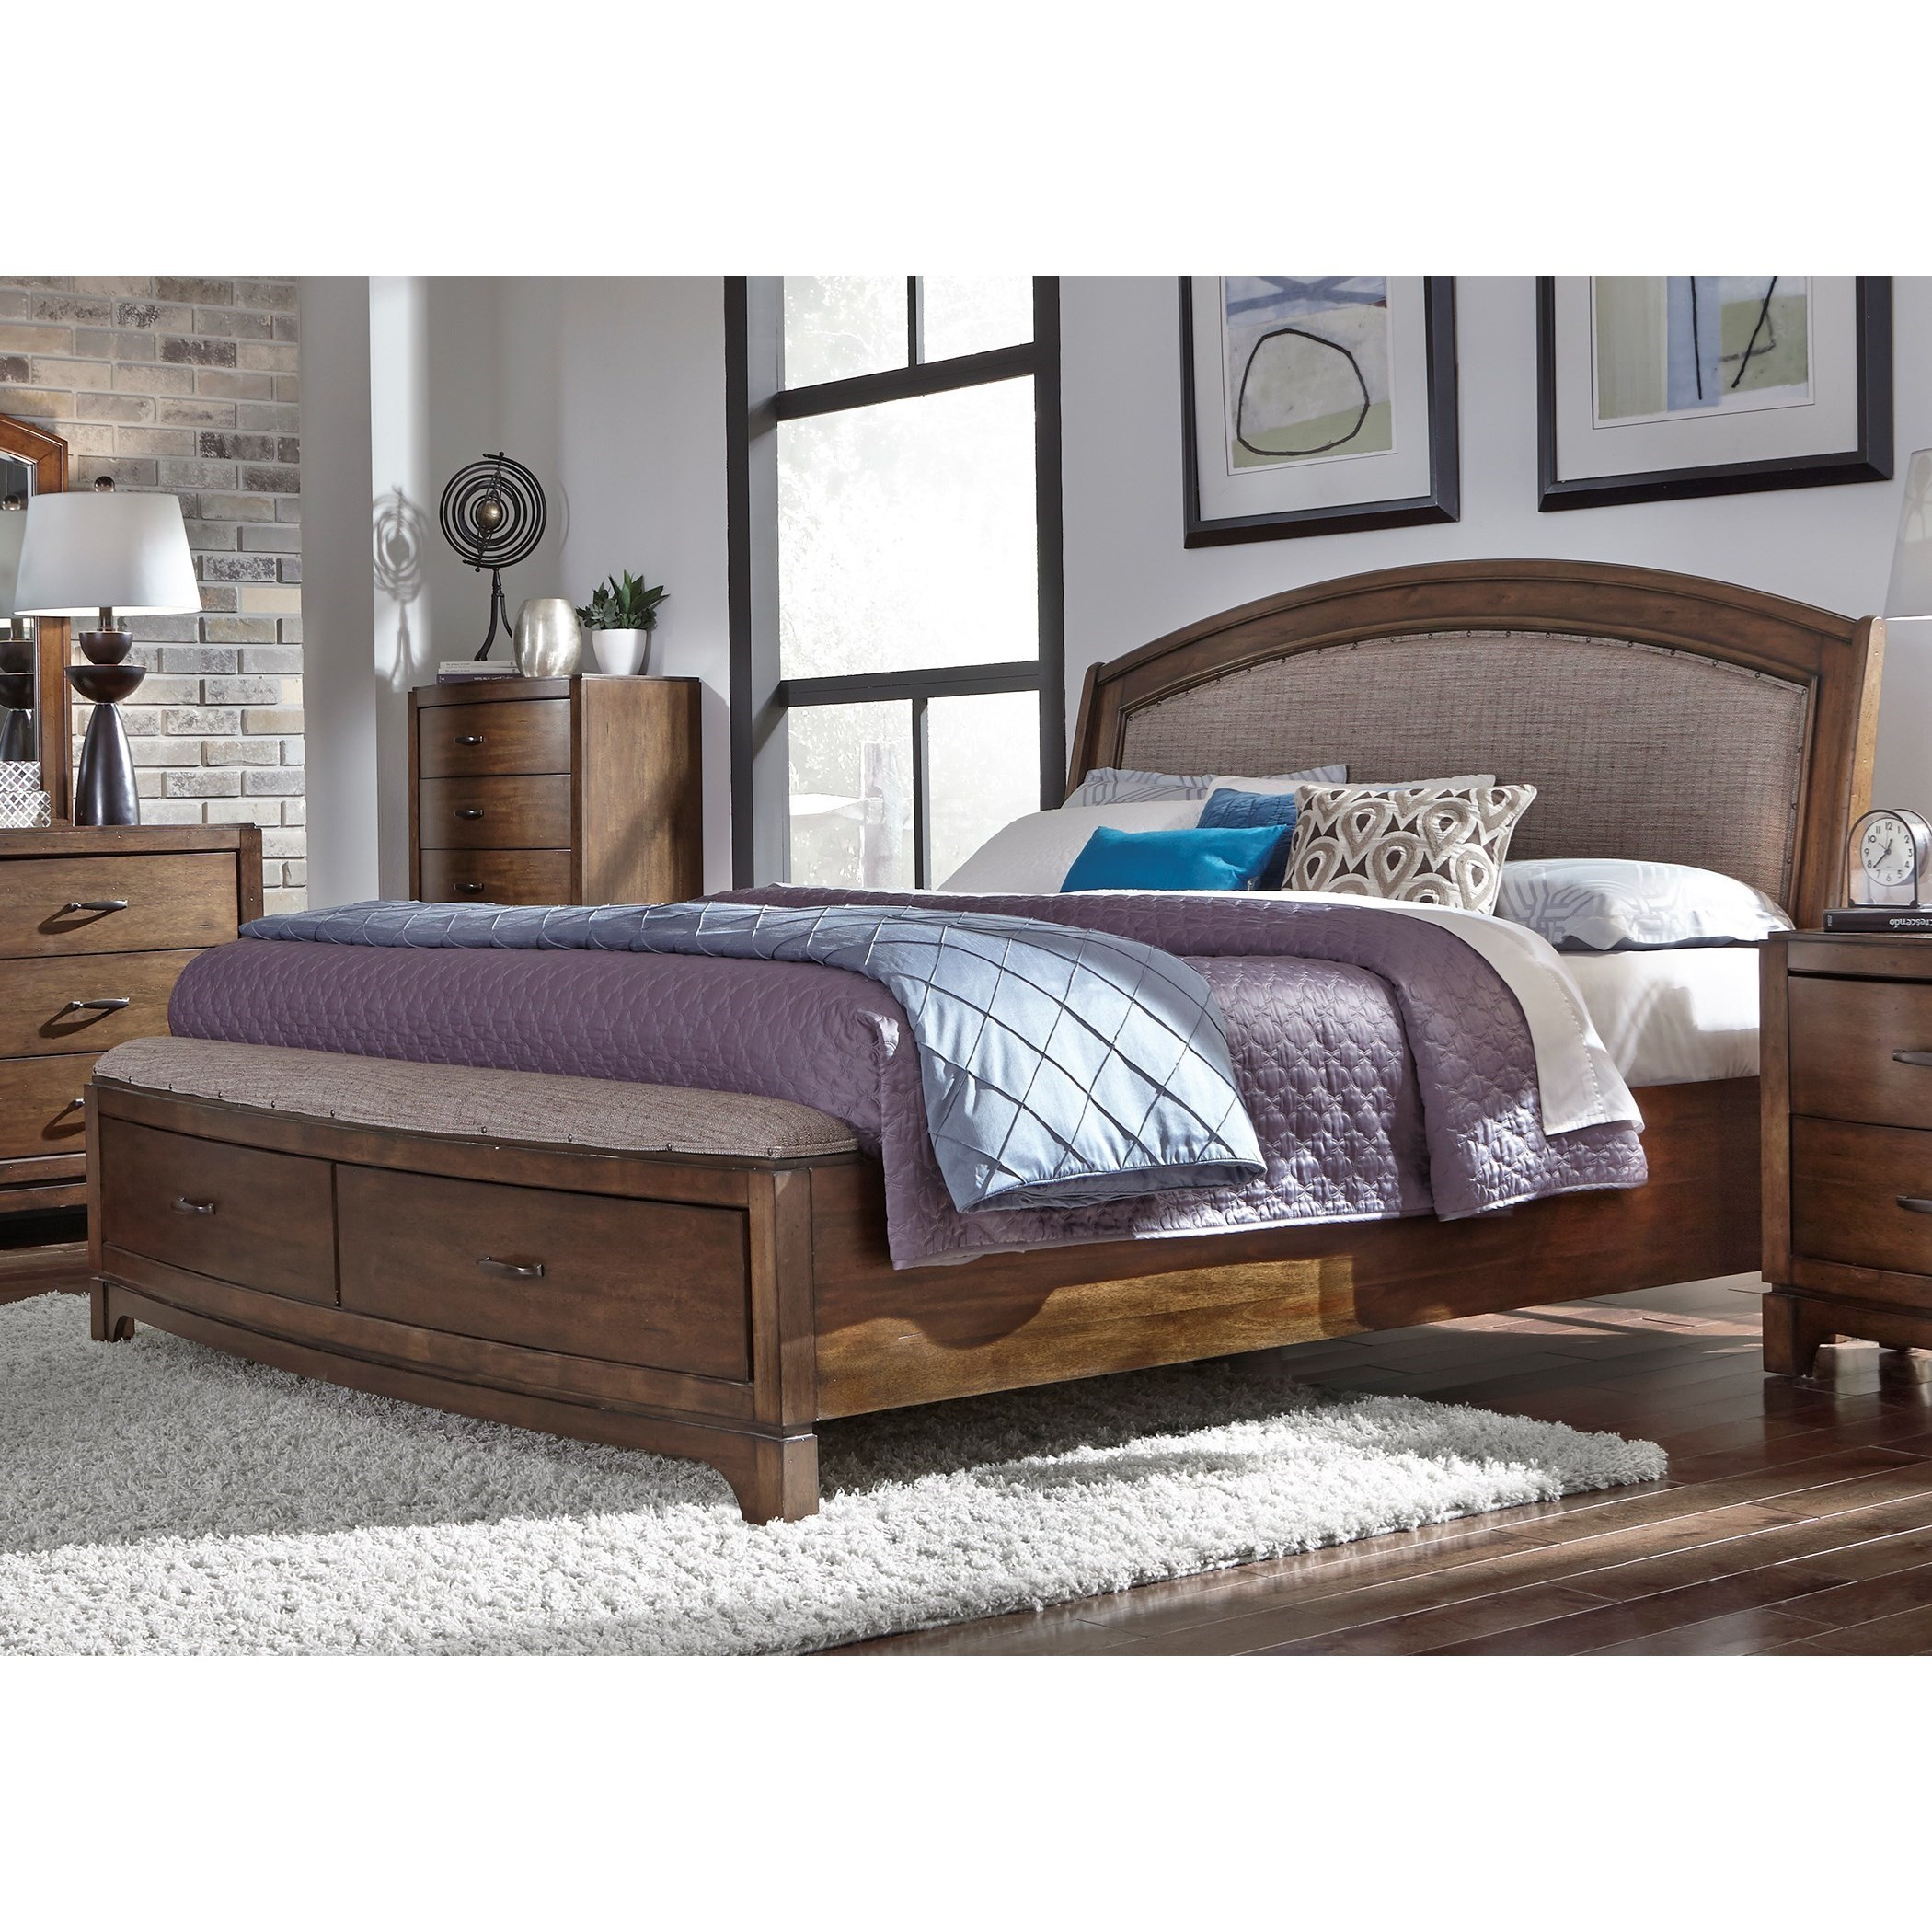 Liberty Furniture Avalon III Queen Storge Bed with